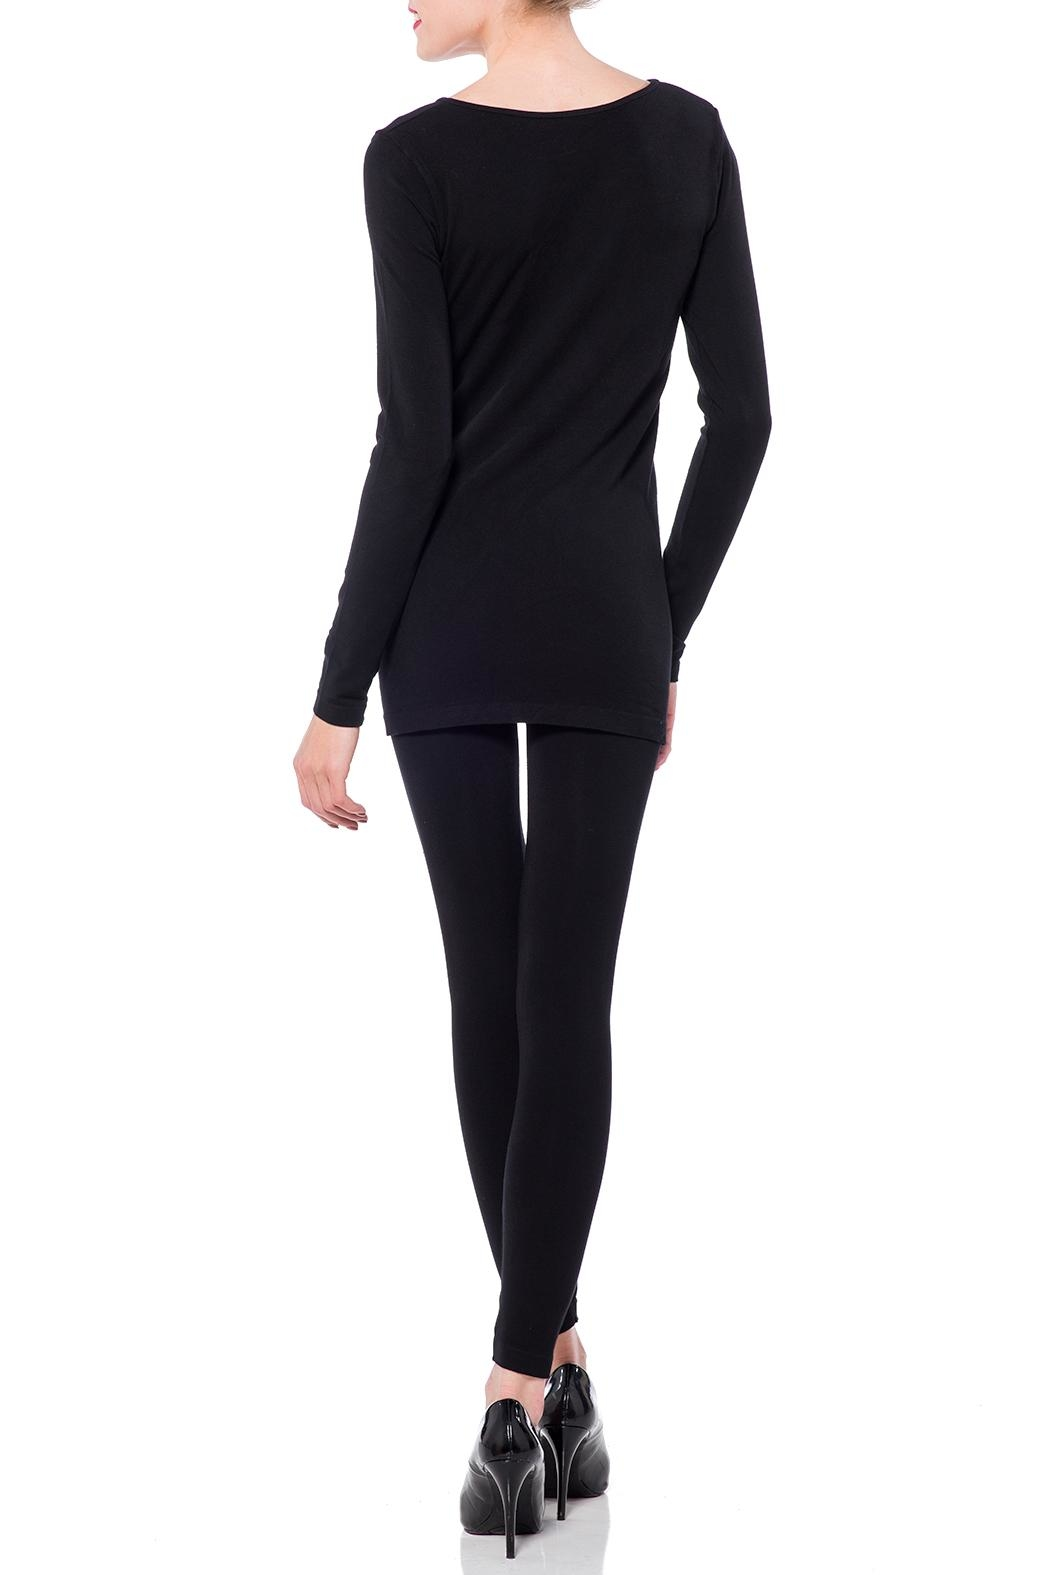 Cest Moi Bamboo Long Sleeve Top - Front Full Image